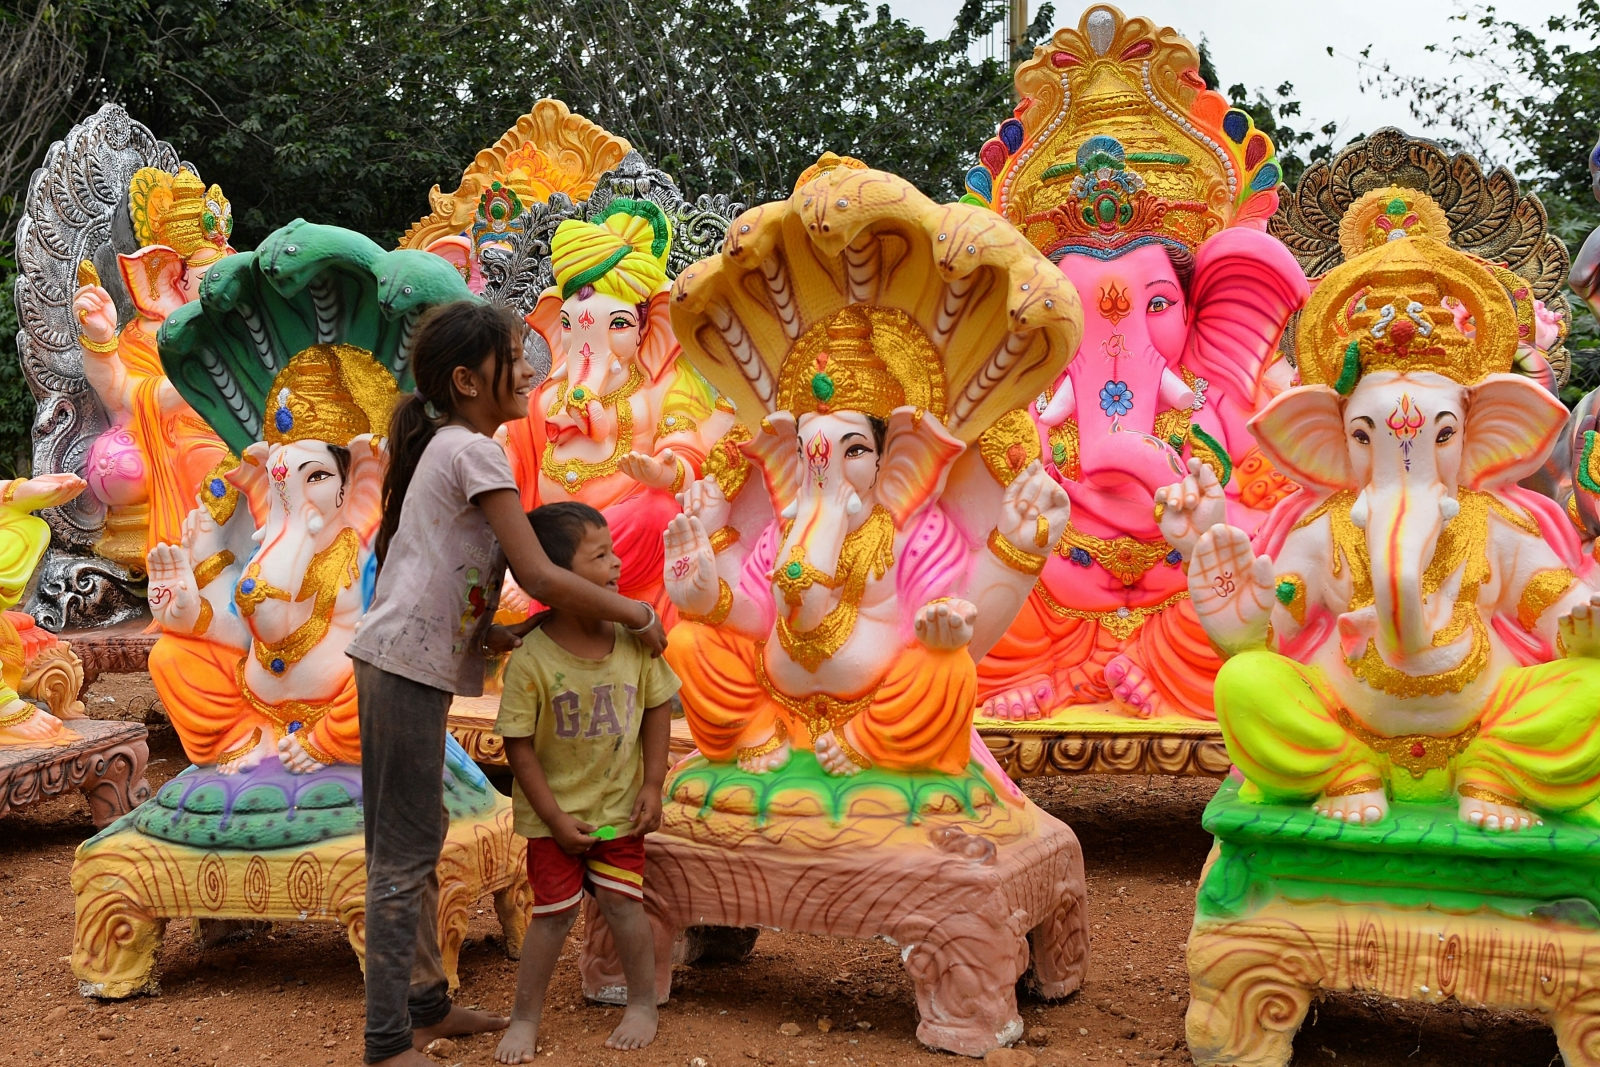 Decoration For Puja At Home Ganesh Chaturthi Festival Www Imgkid Com The Image Kid